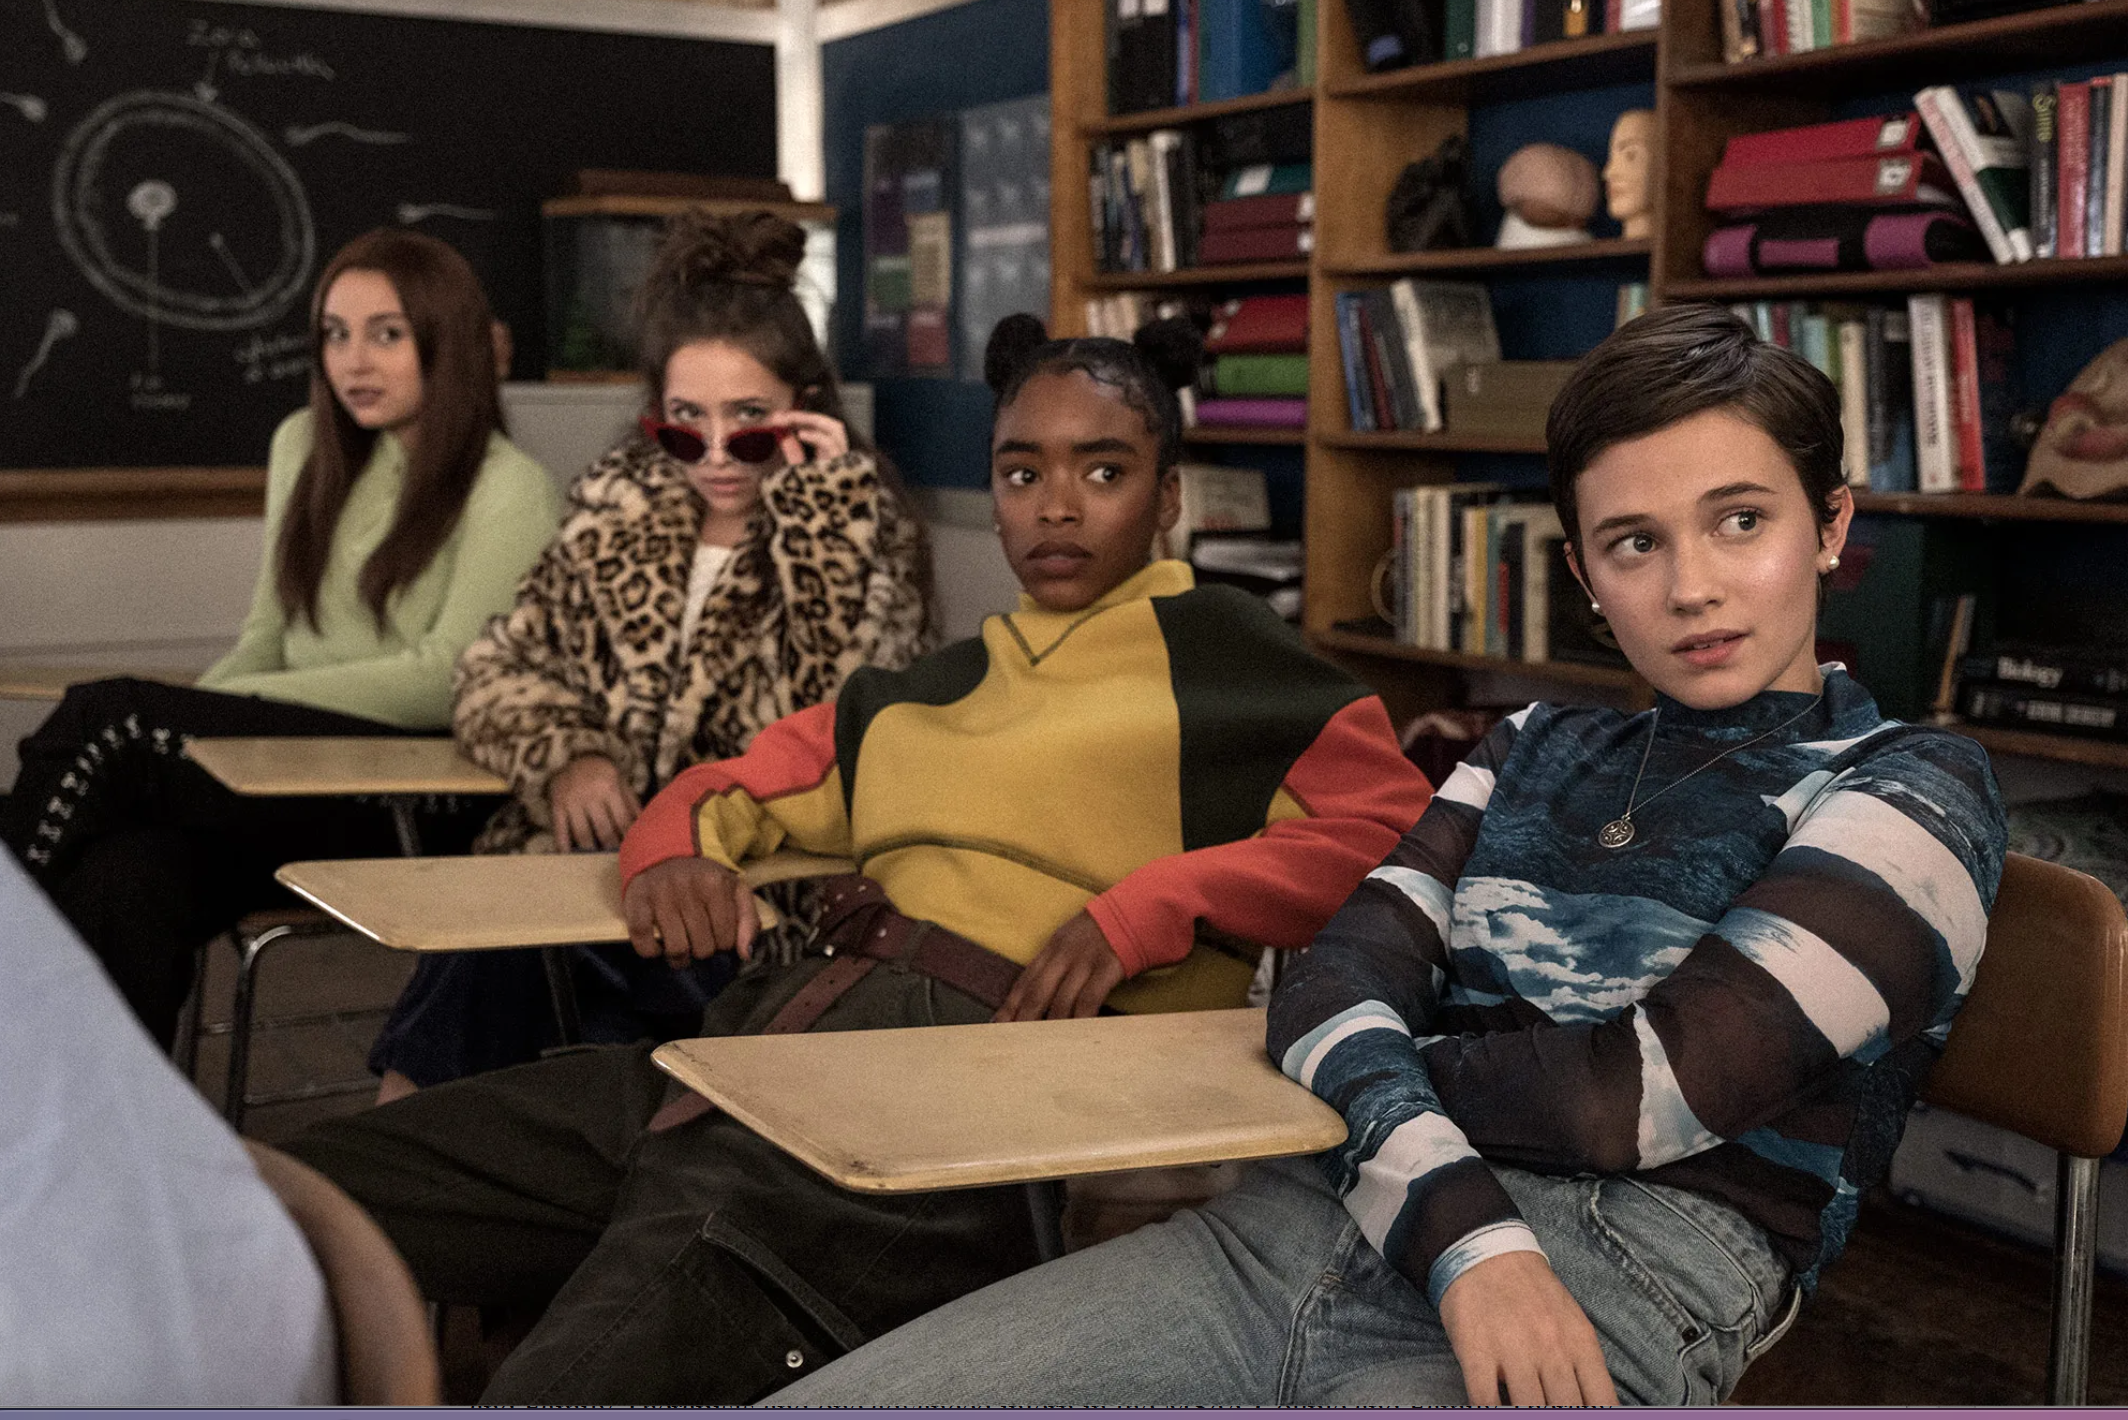 Four young girls sitting at desks in a school, still from the Craft Legacy